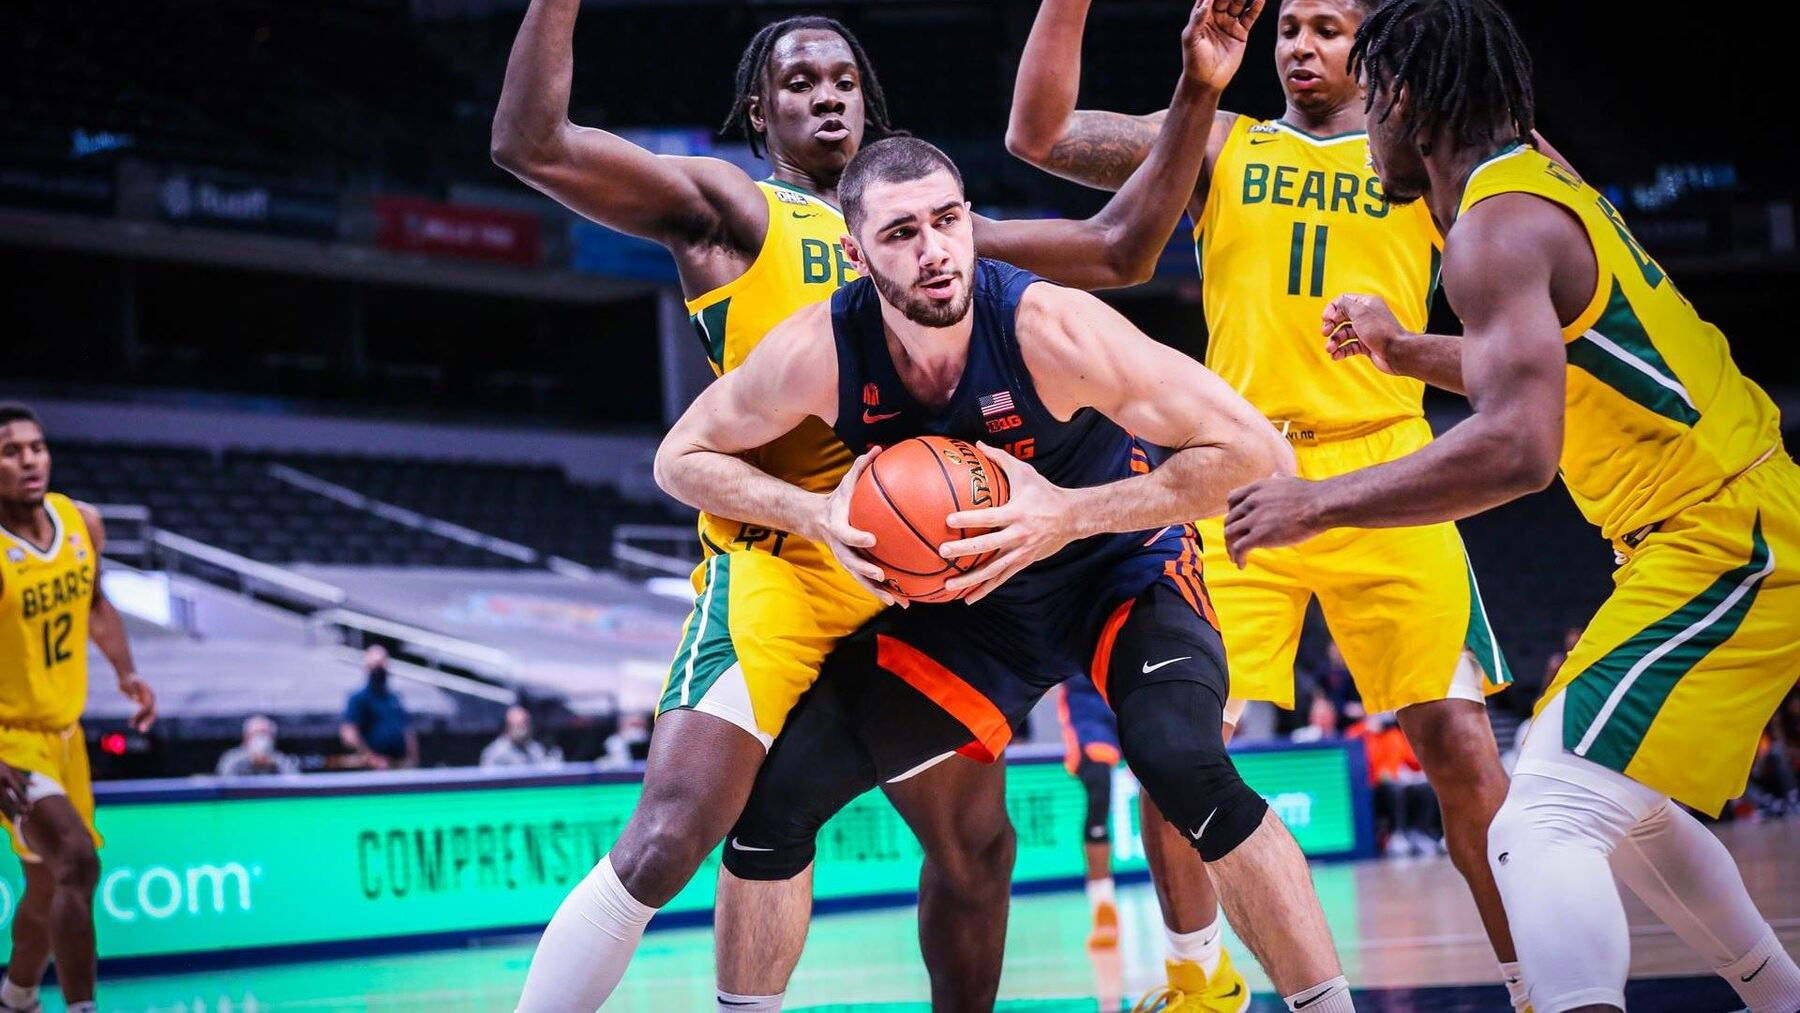 Giorgi Beshanishvili, surrounded by Bears defenders under the basket, prepares to post up